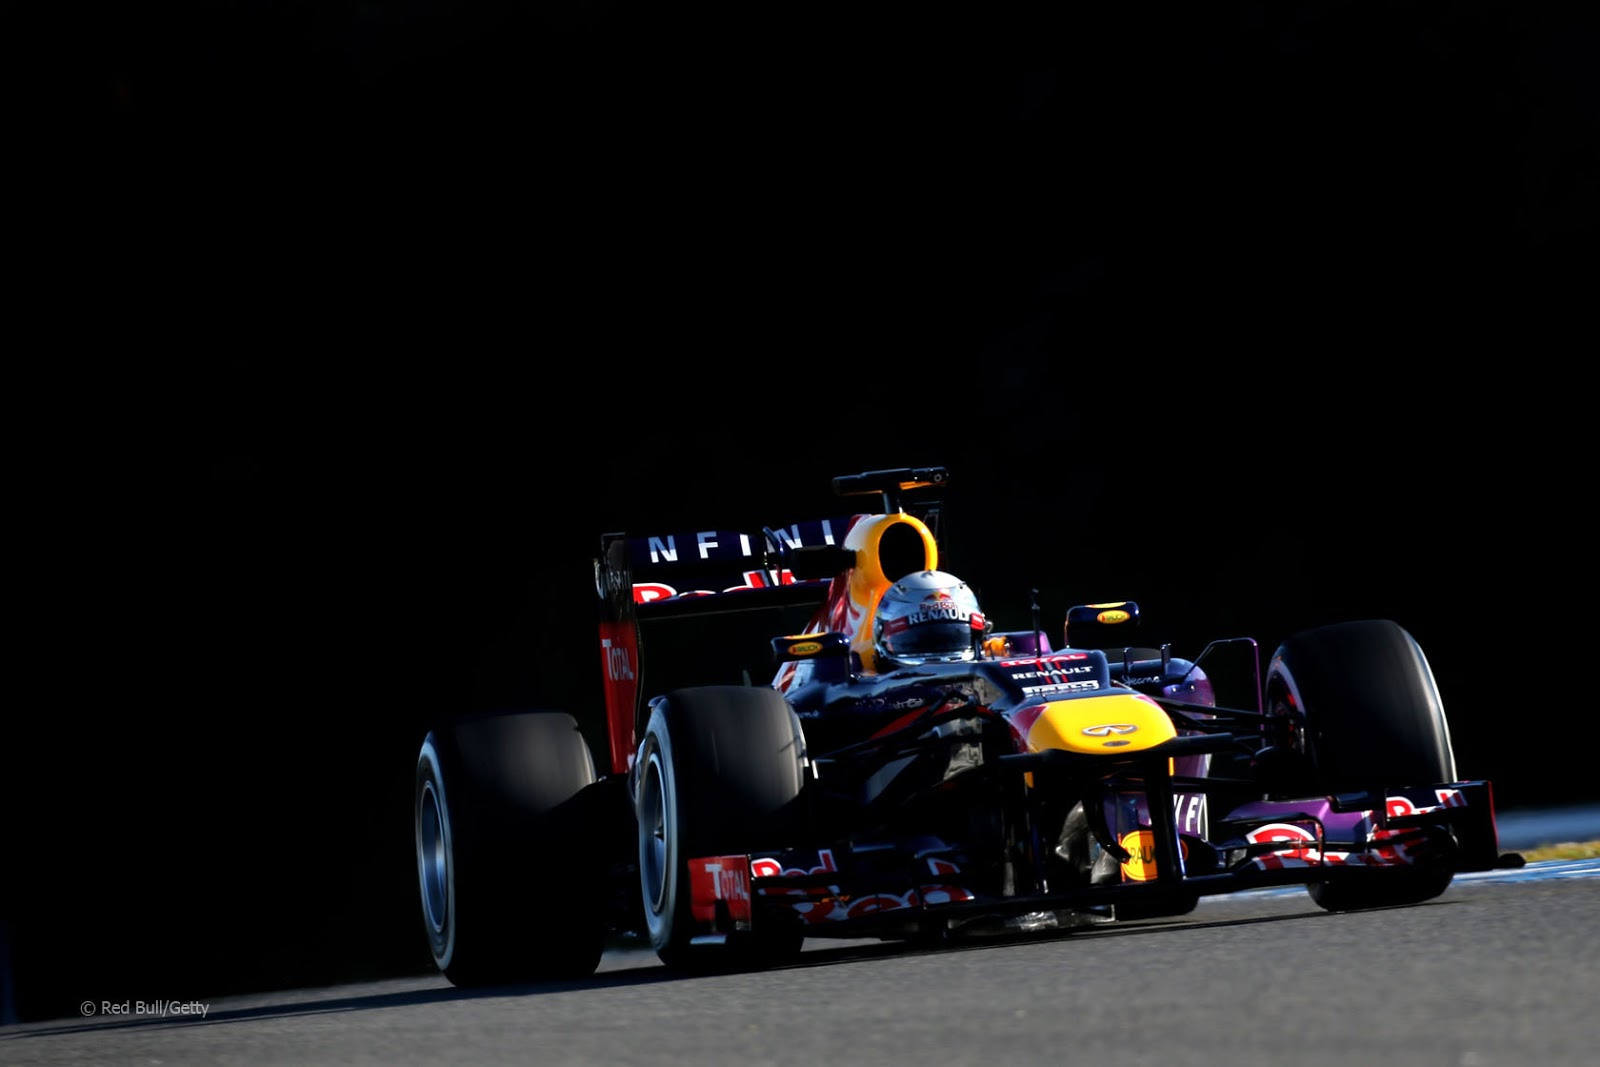 red bull rb9 vettel jerez 2013 red bull rb9 vettel